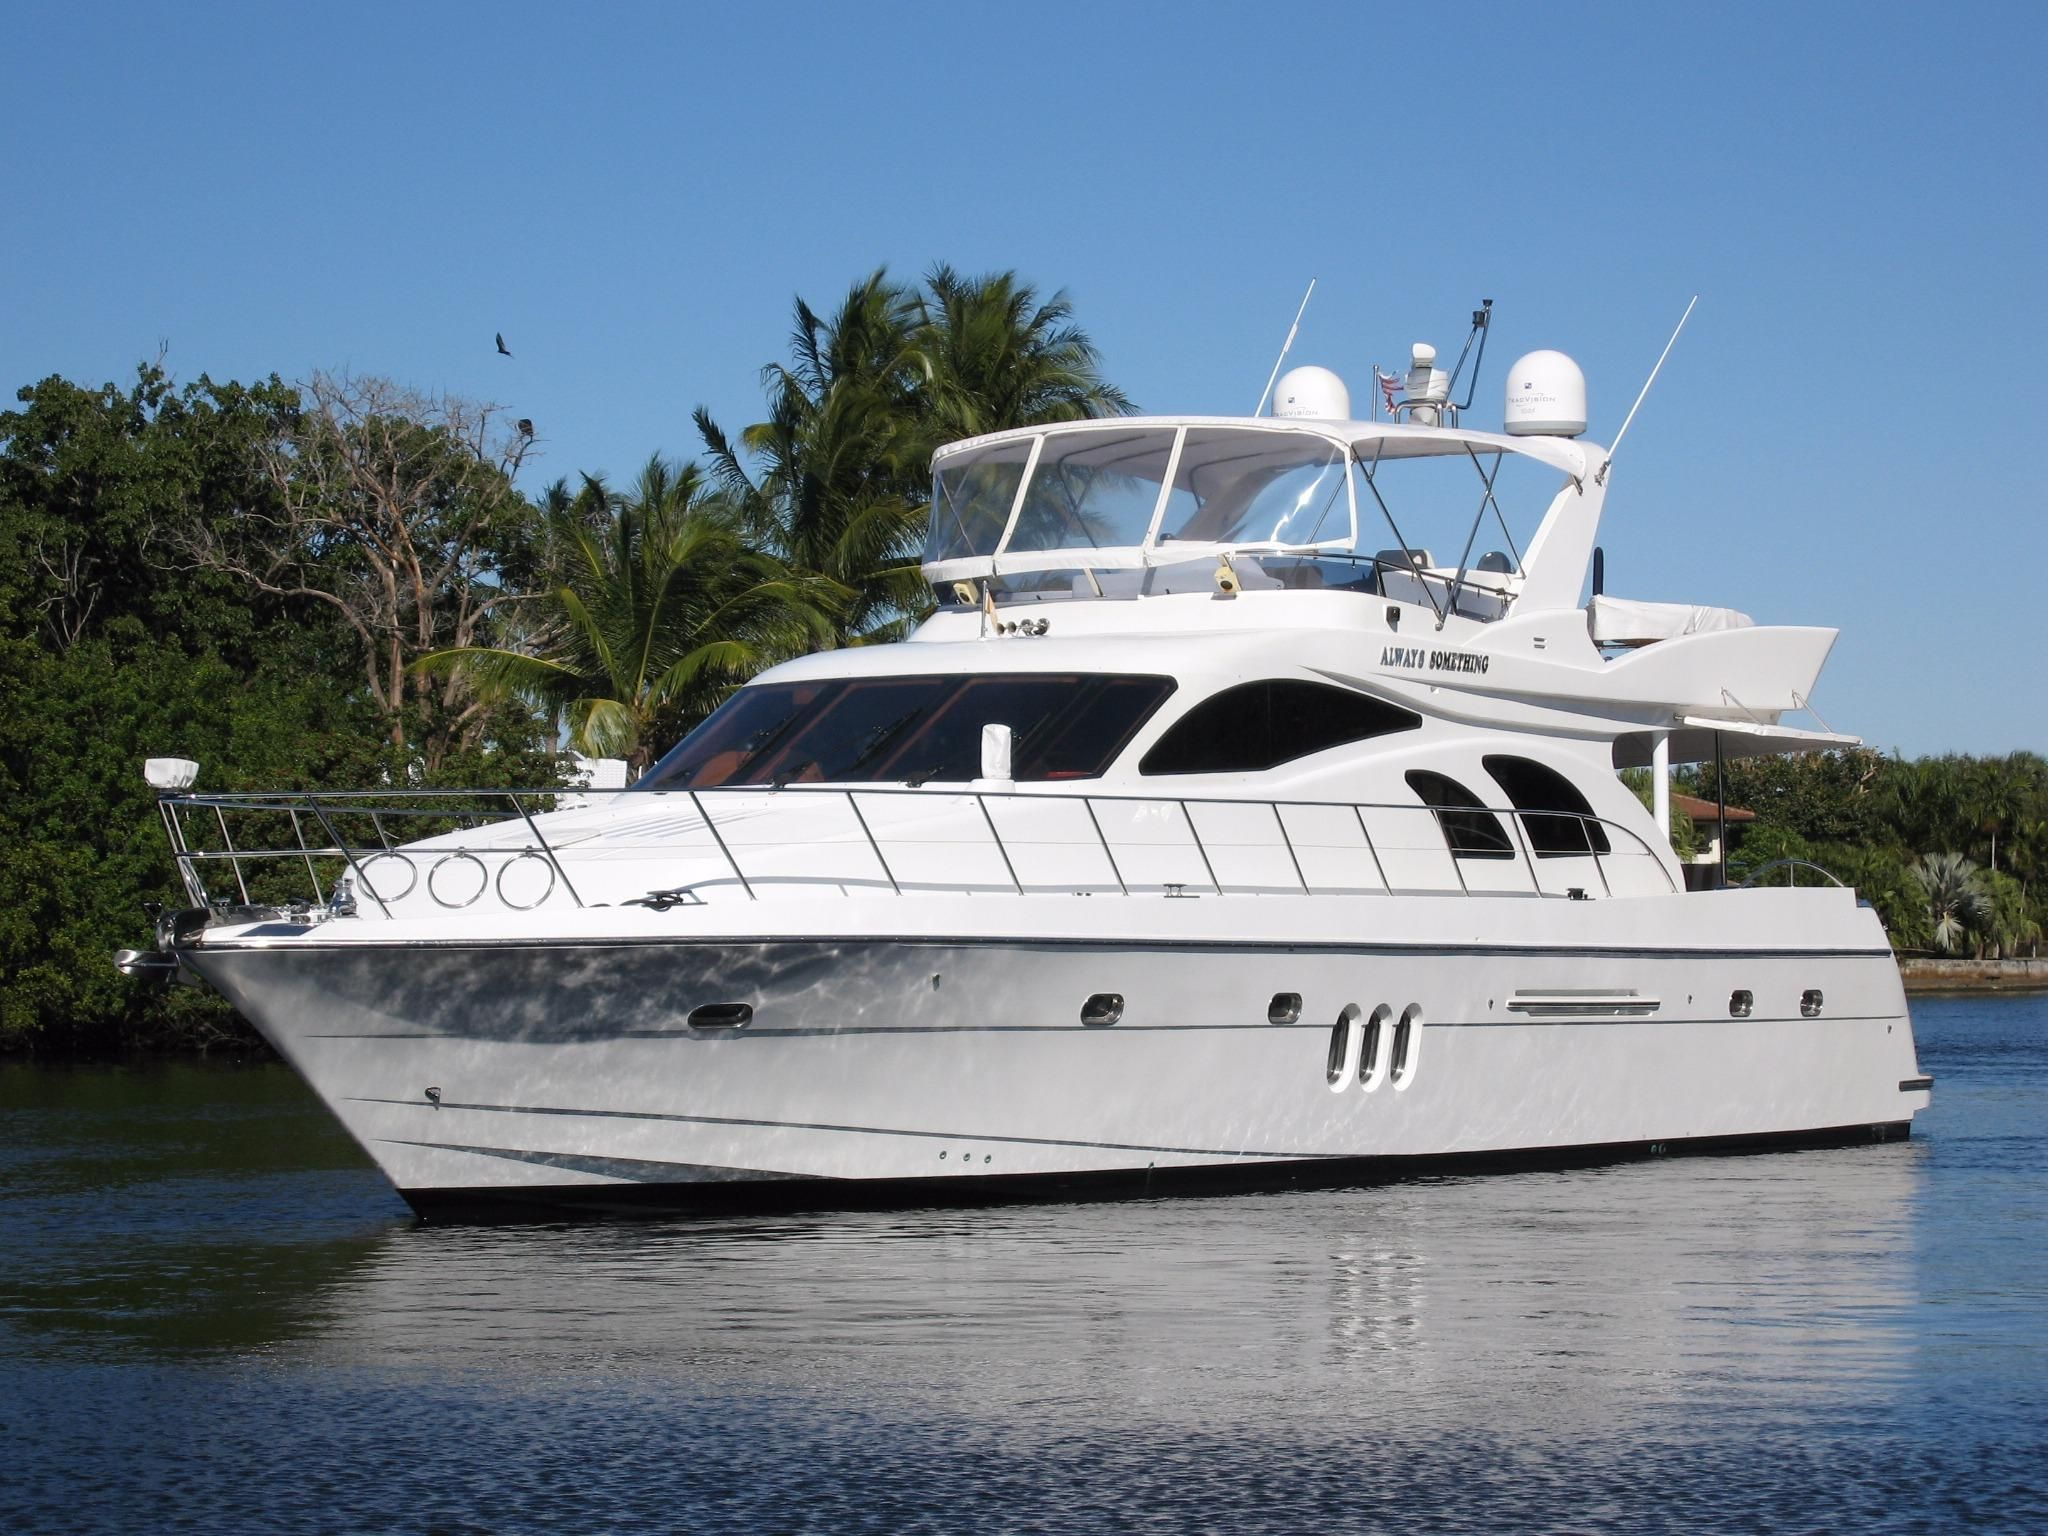 2009 grand harbour 67 motoryacht power boat for sale www for Motor yachts for sale in florida